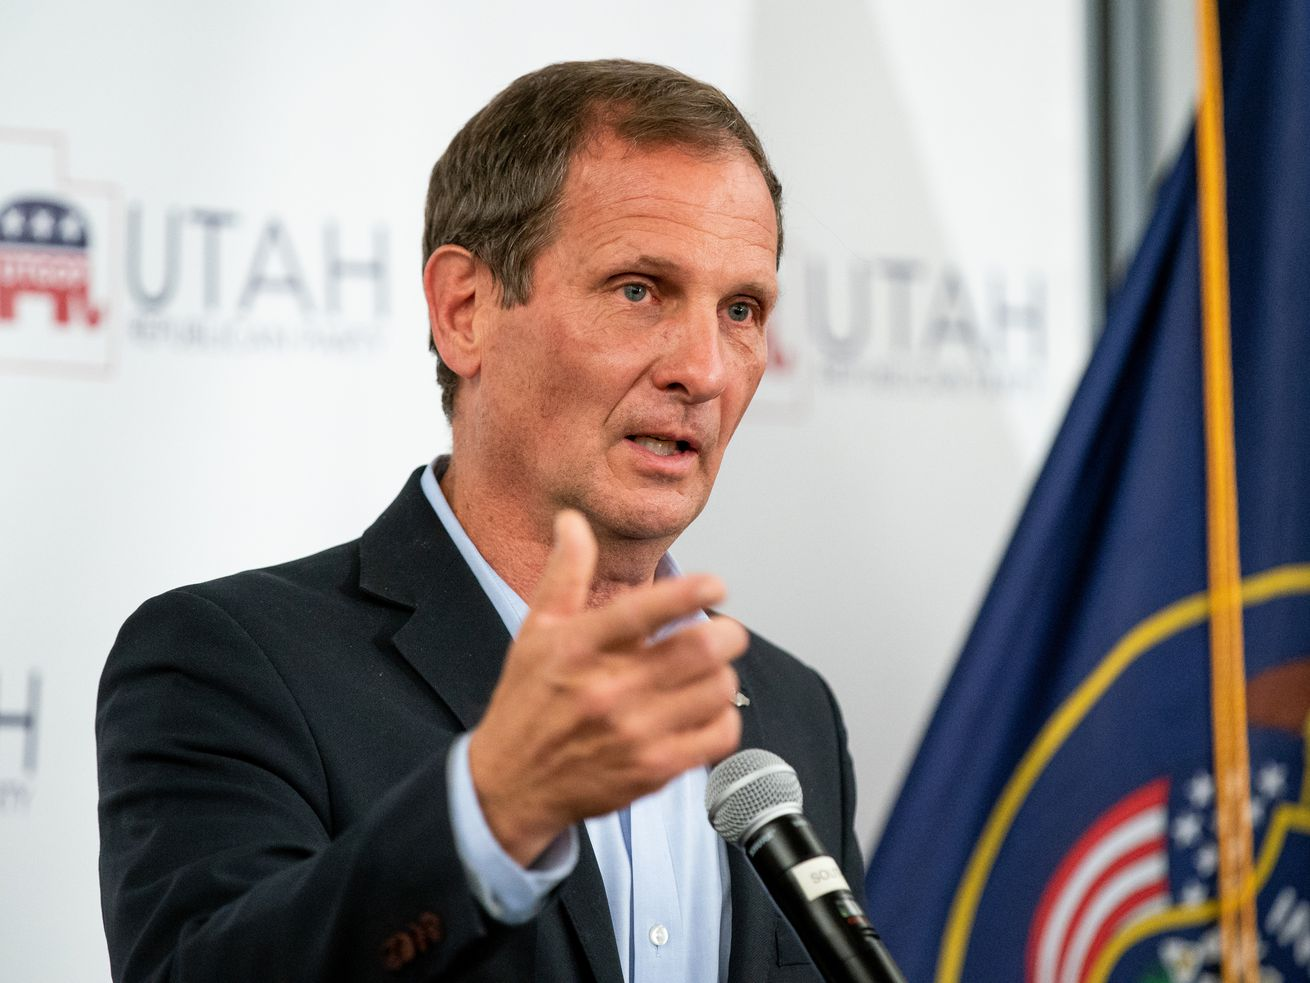 Rep. Chris Stewart, R-Utah, who is in a race to hold onto his 2nd Congressional District seat, speaks at an election night event for Republican candidates in at the Utah Association of Realtors building in Sandy on Tuesday, Nov. 3, 2020.